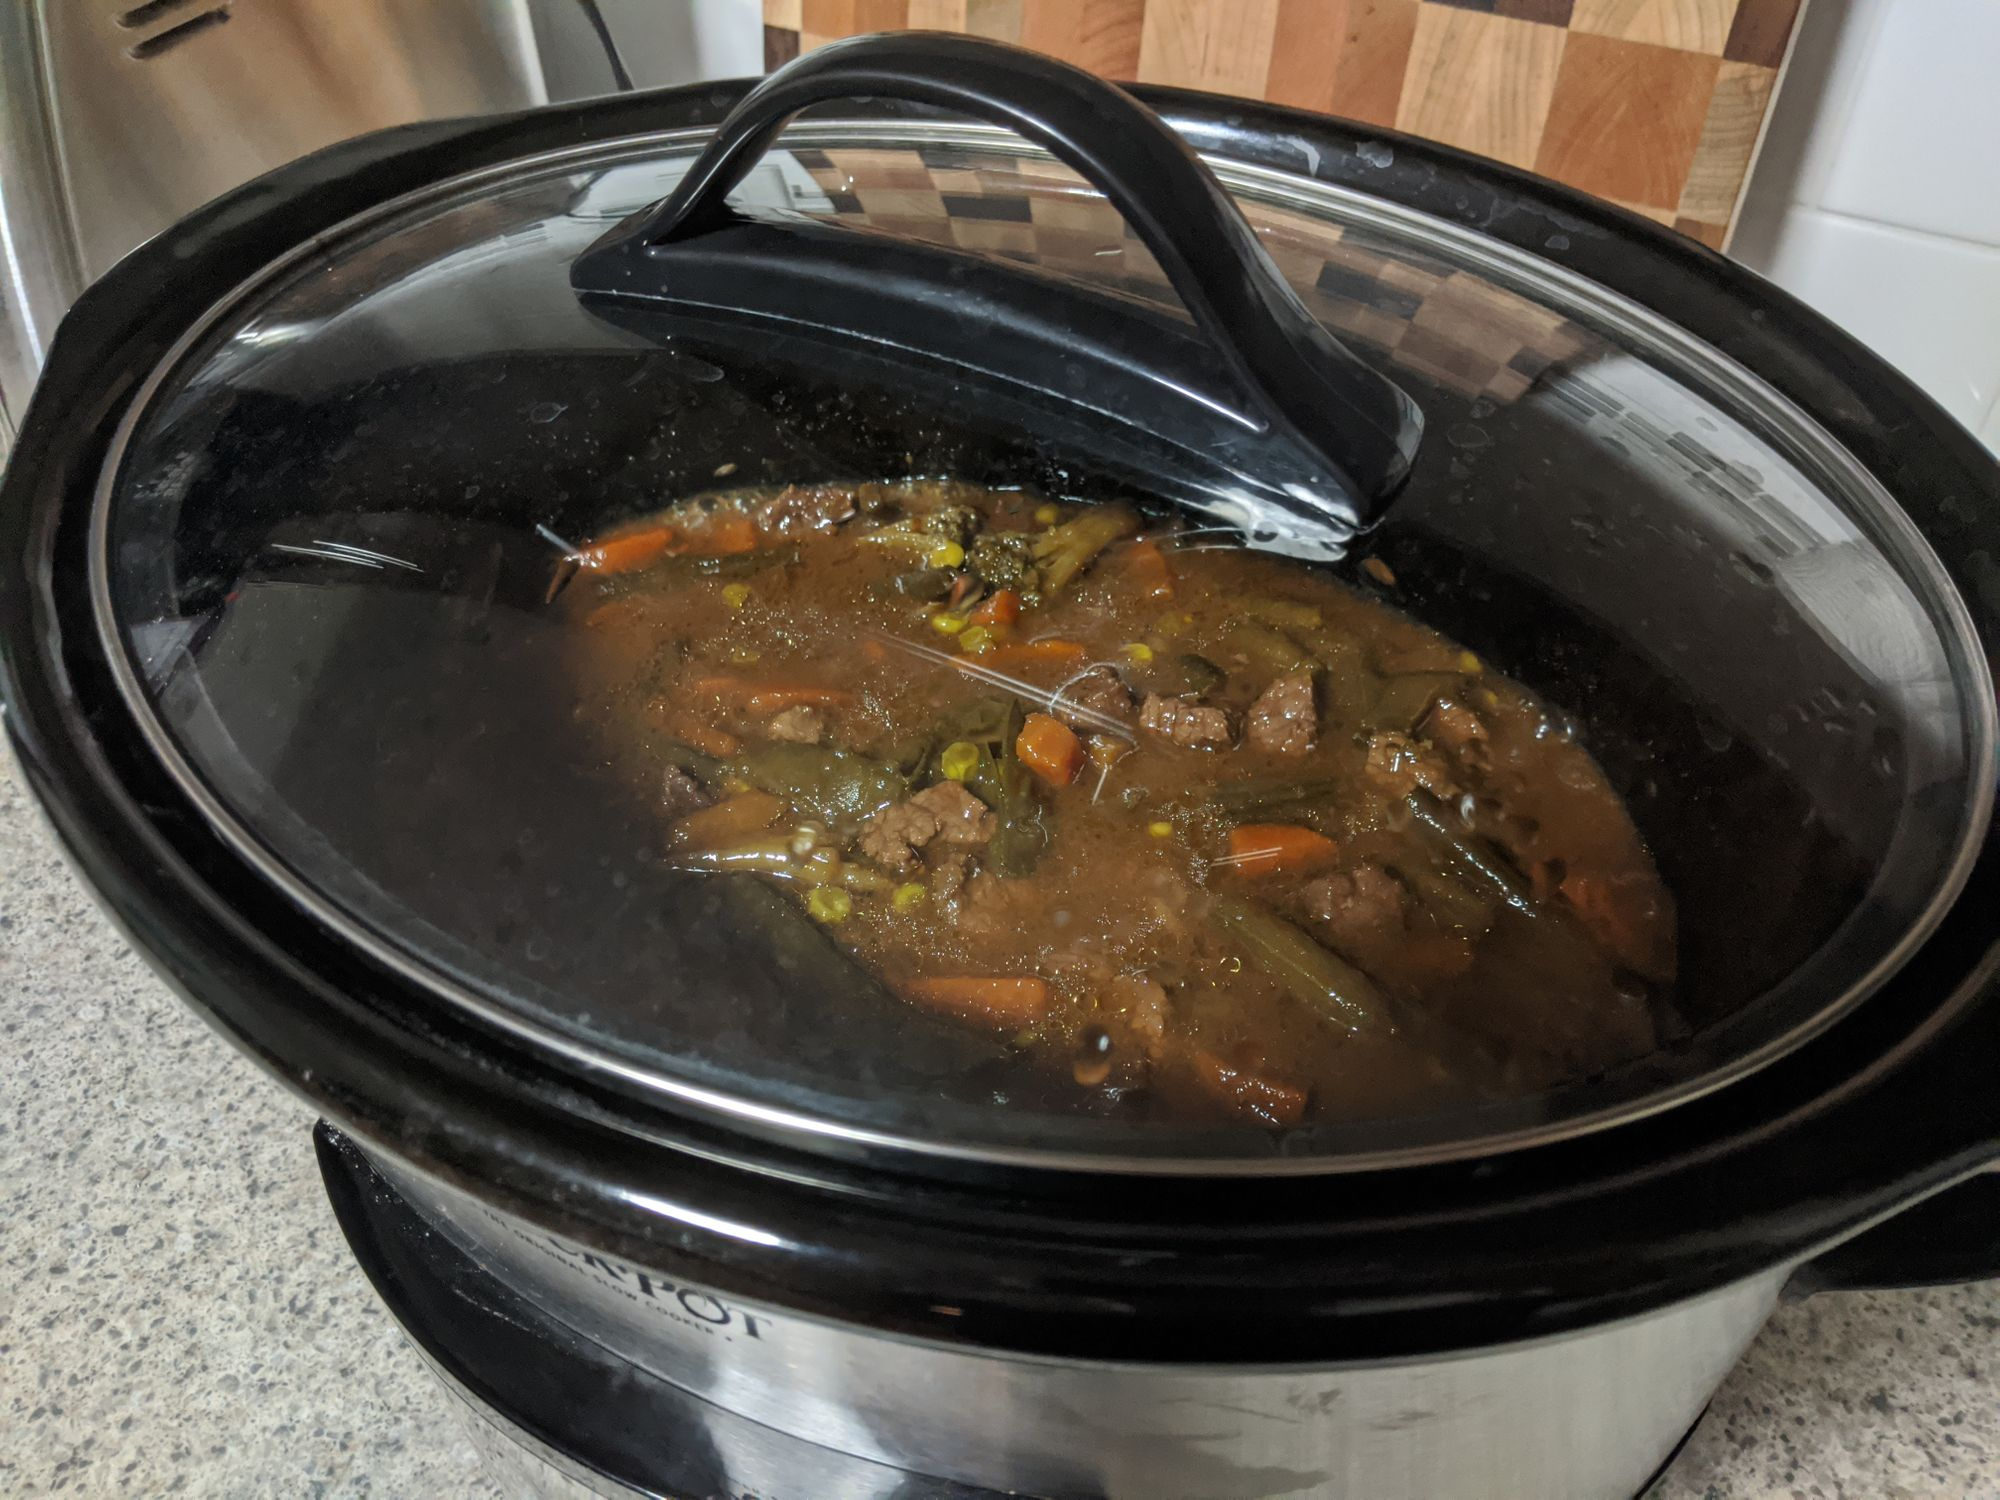 A picture taken of a slow cooker from the top view. You can see through the glass cover inside, where a beef stew looking meal is cooking away.